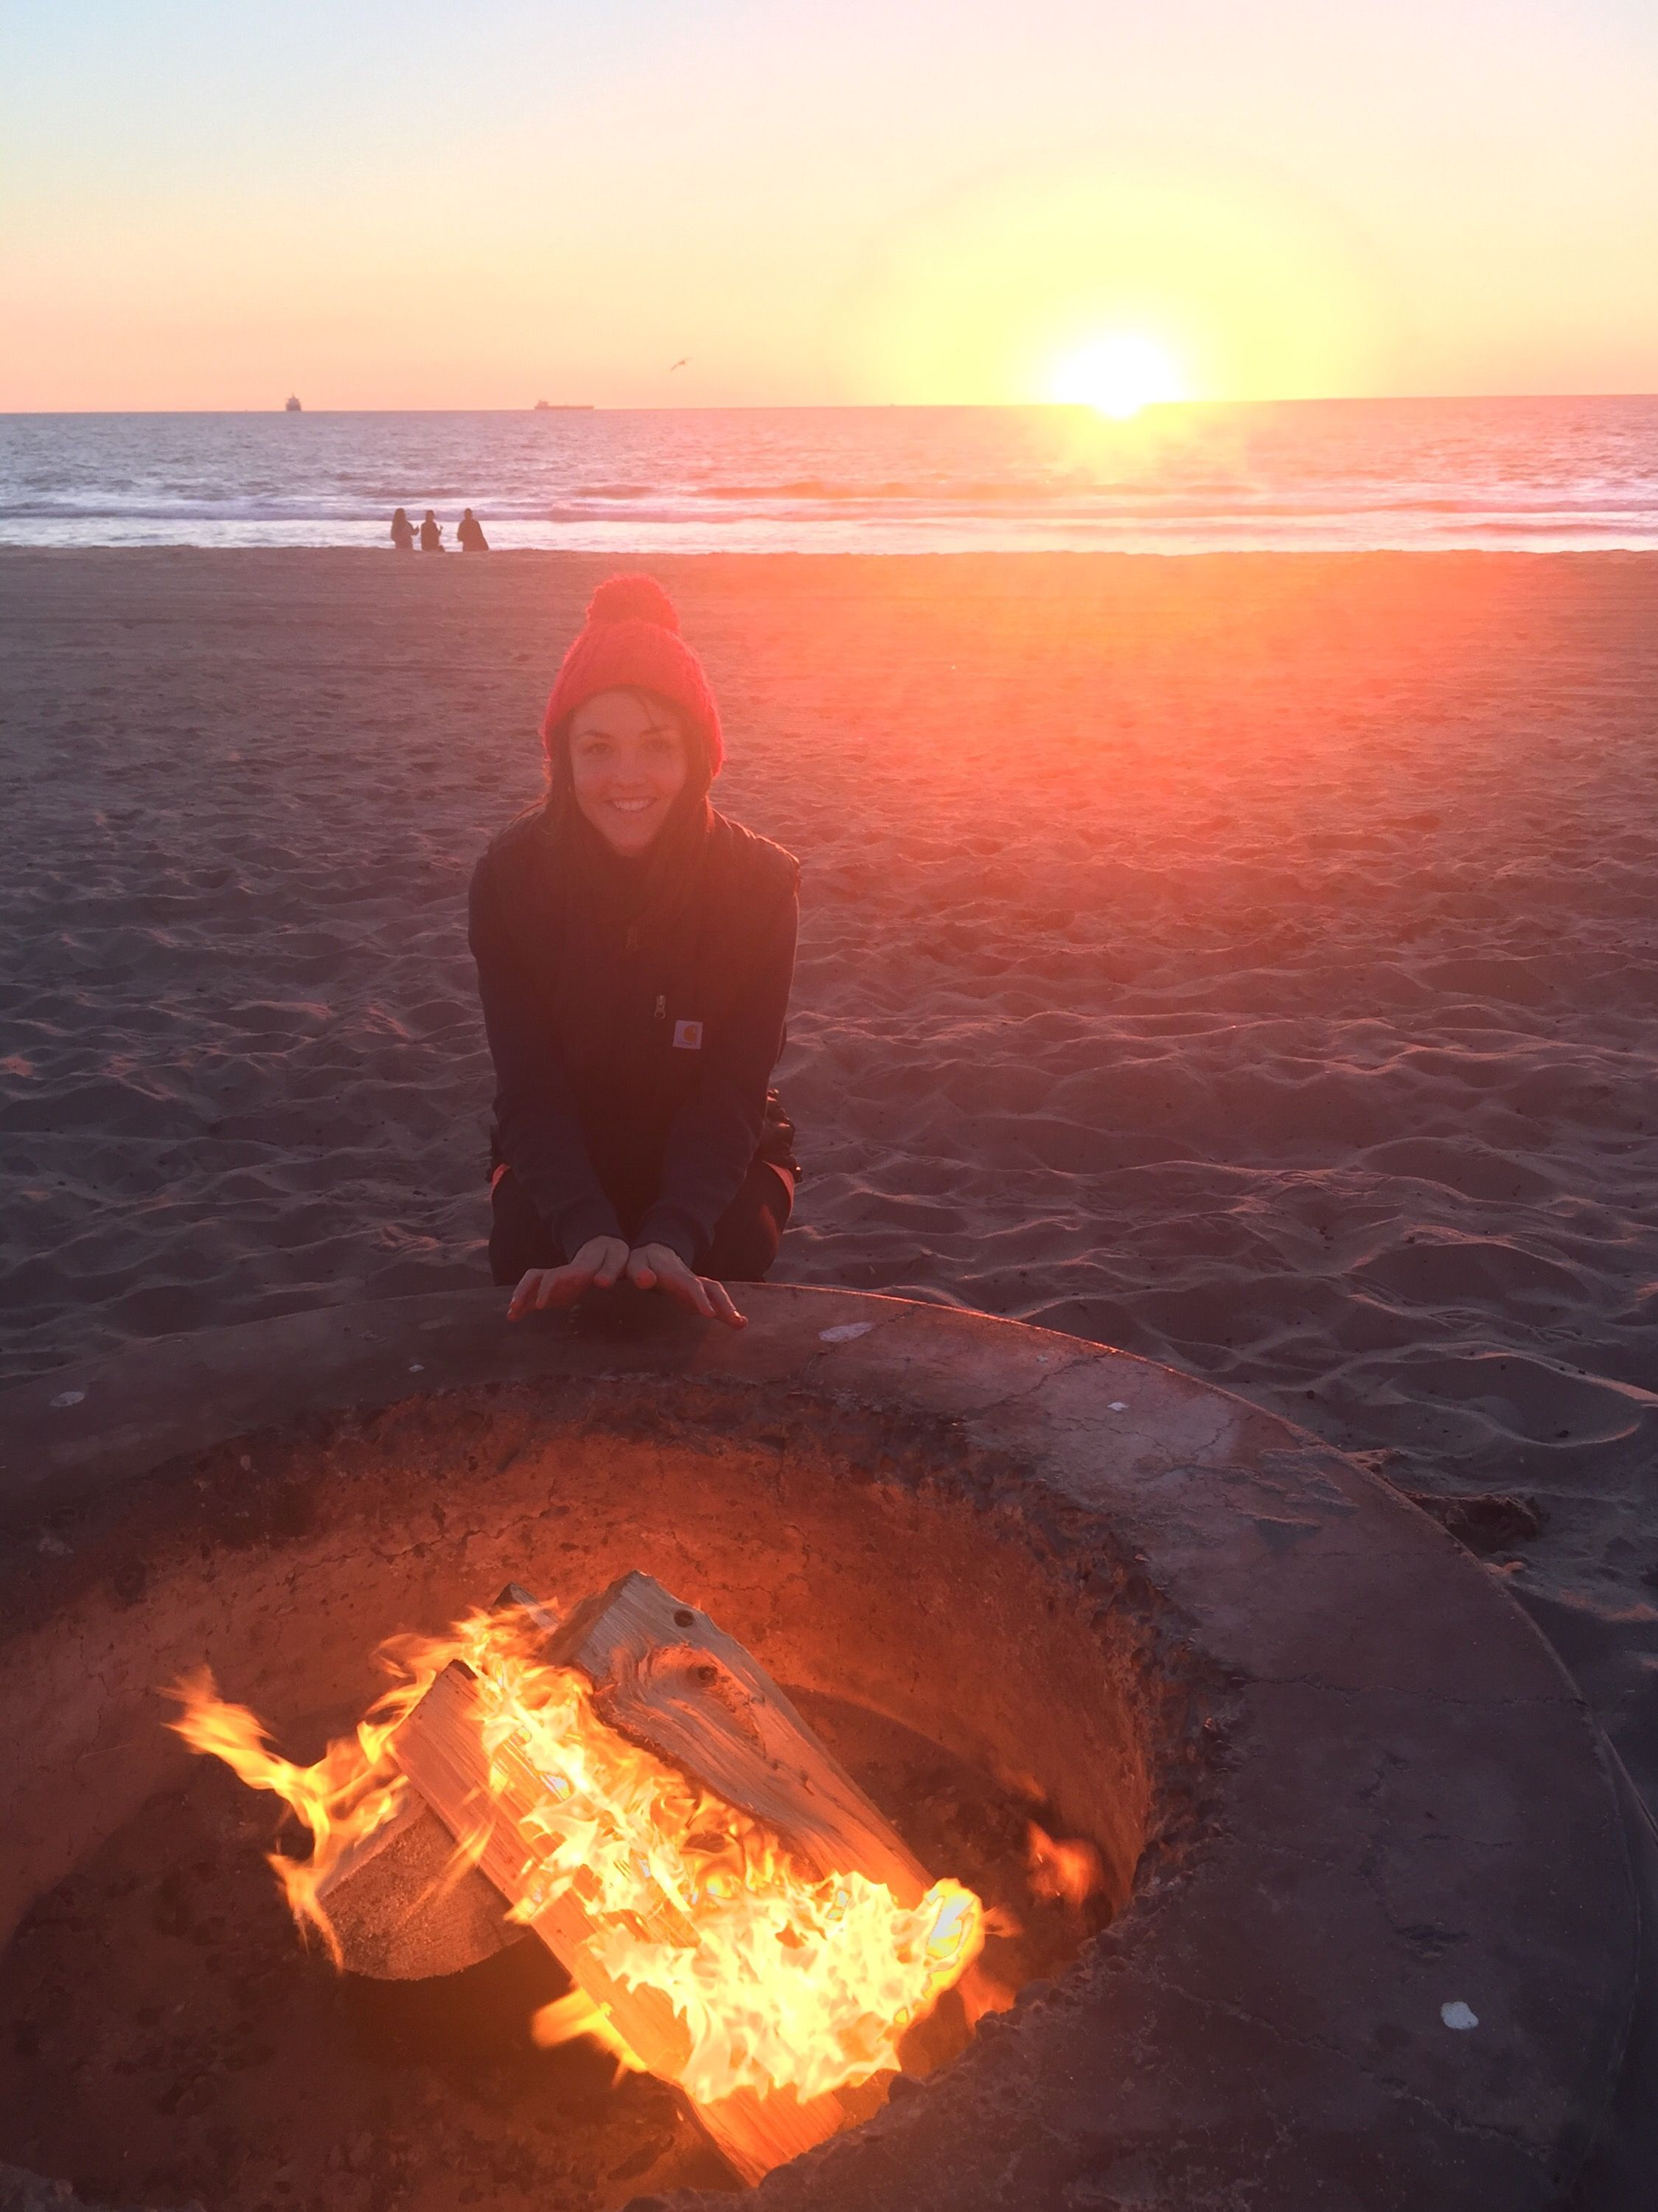 Where To Legally Have A Beach Bonfire In Los Angeles Los Angeles Beaches Beach Bonfire Los Angeles